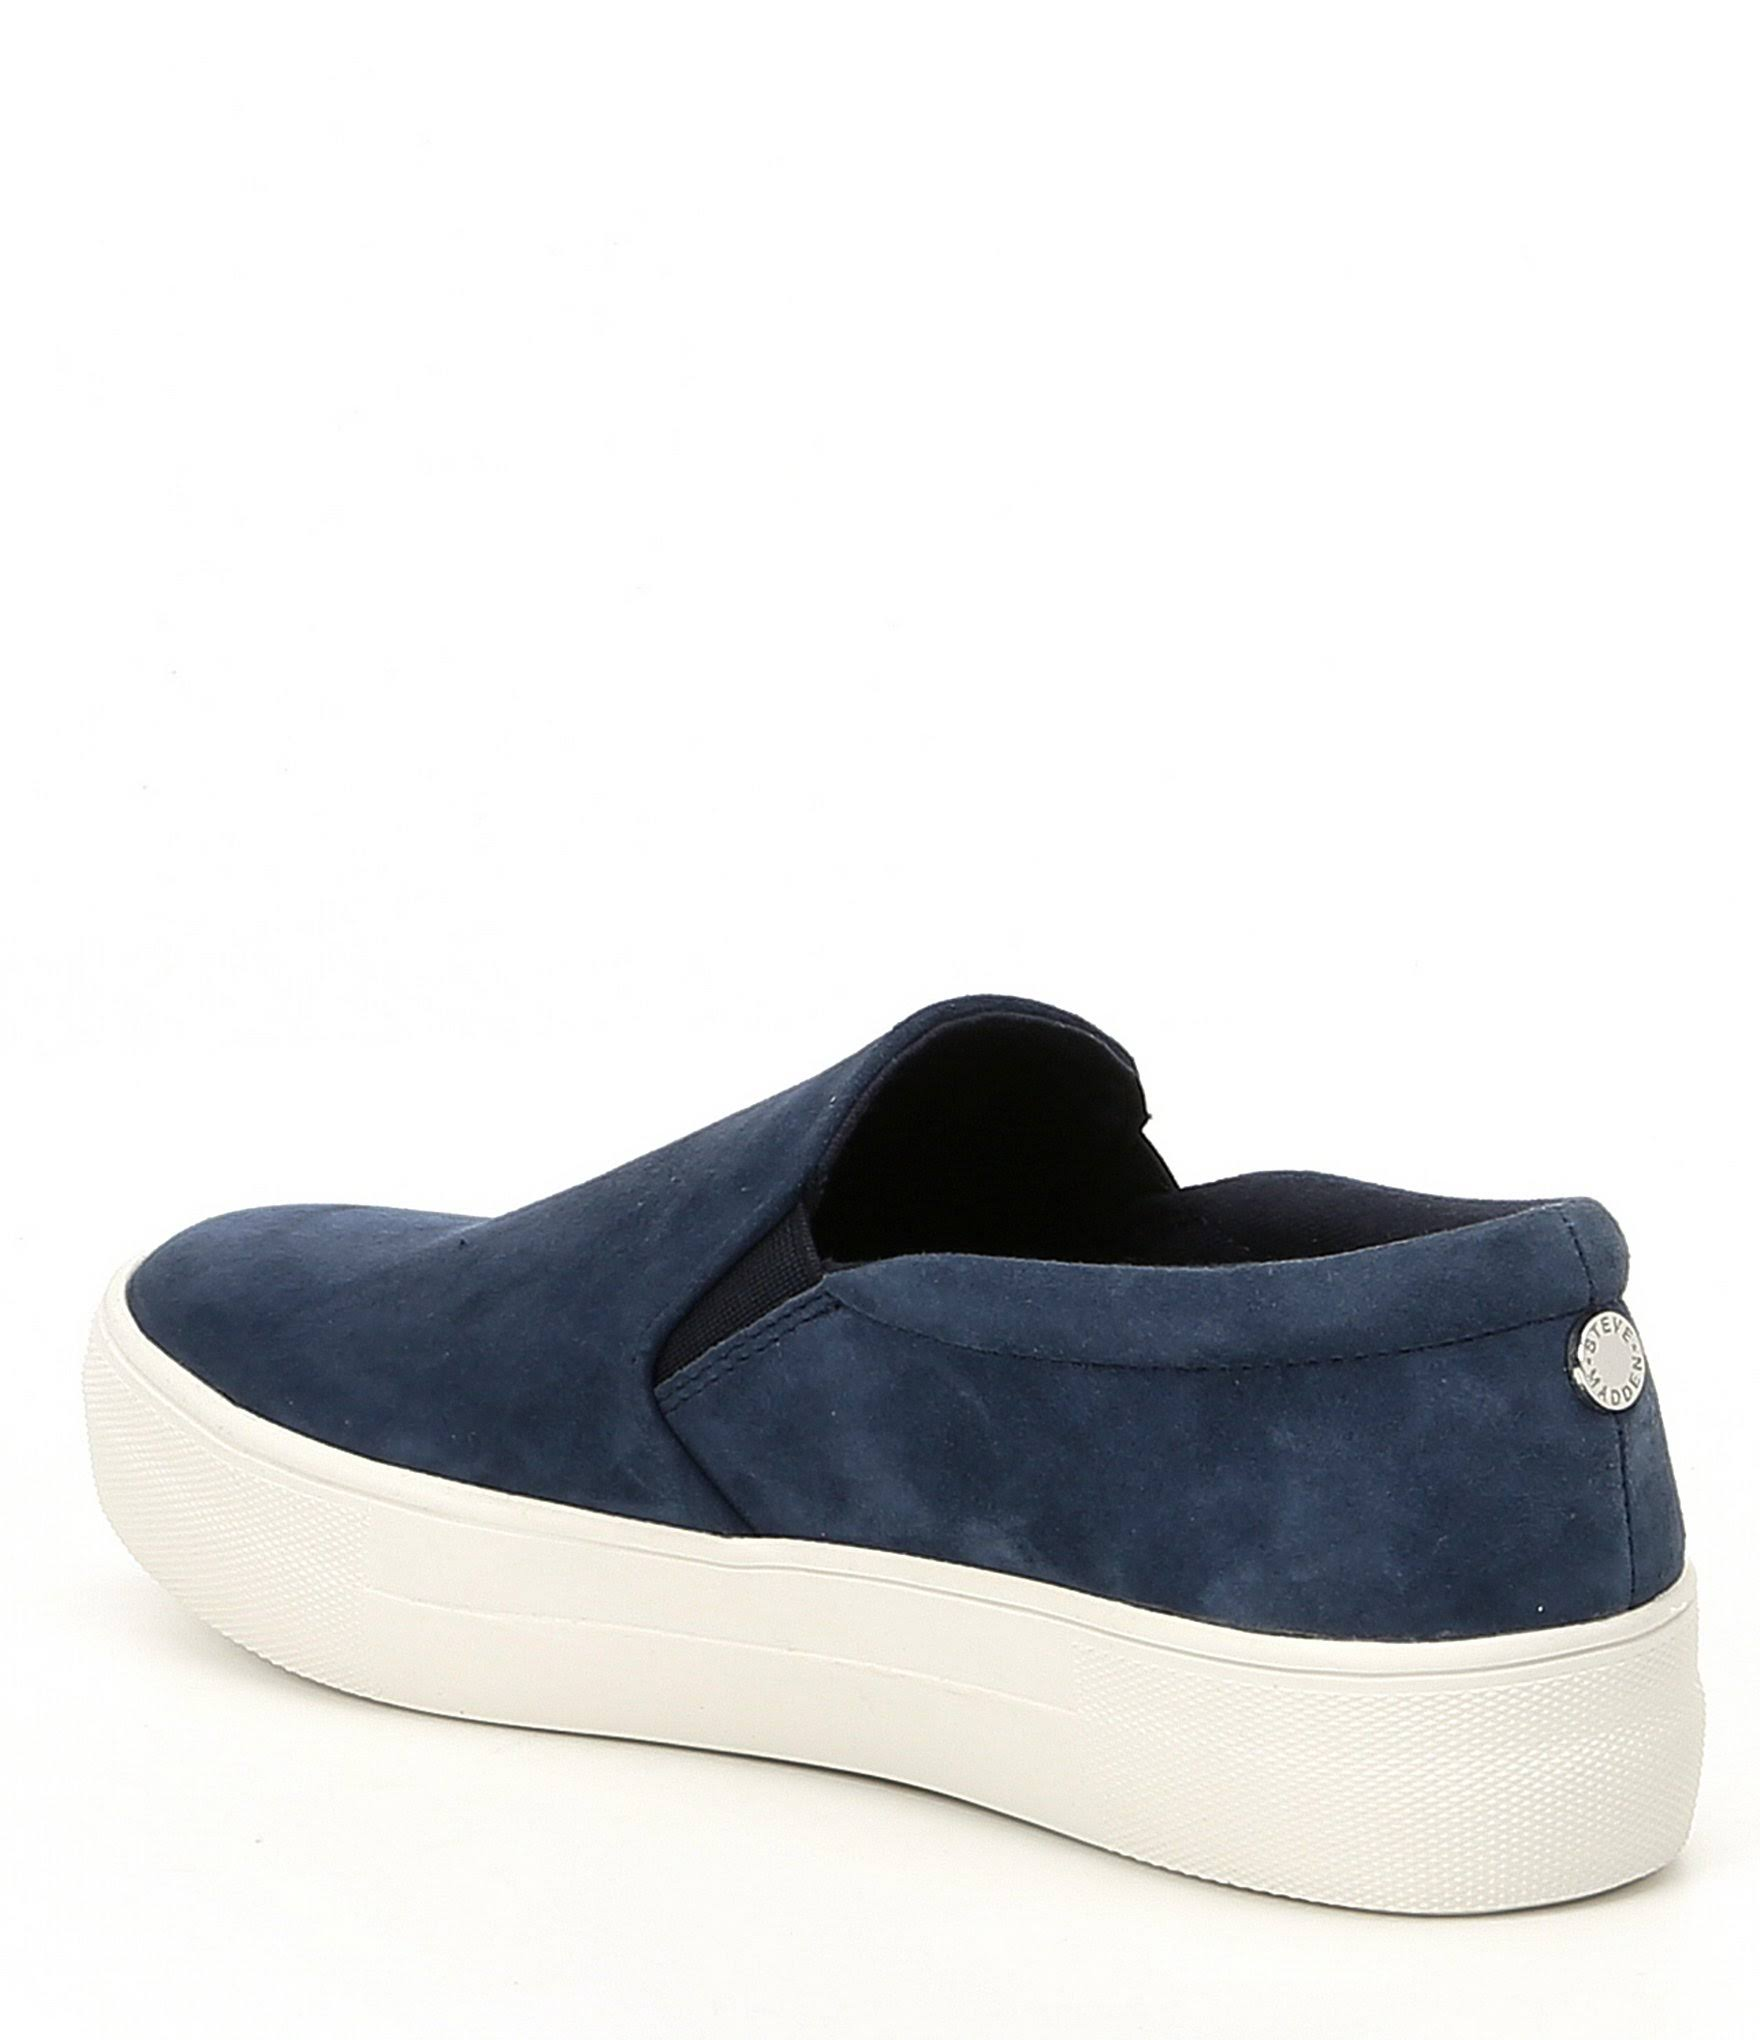 Navy 5 Suede Para Sneaker Mujer 8 Zapatillas M Madden Gills Steve wO1xRTq7